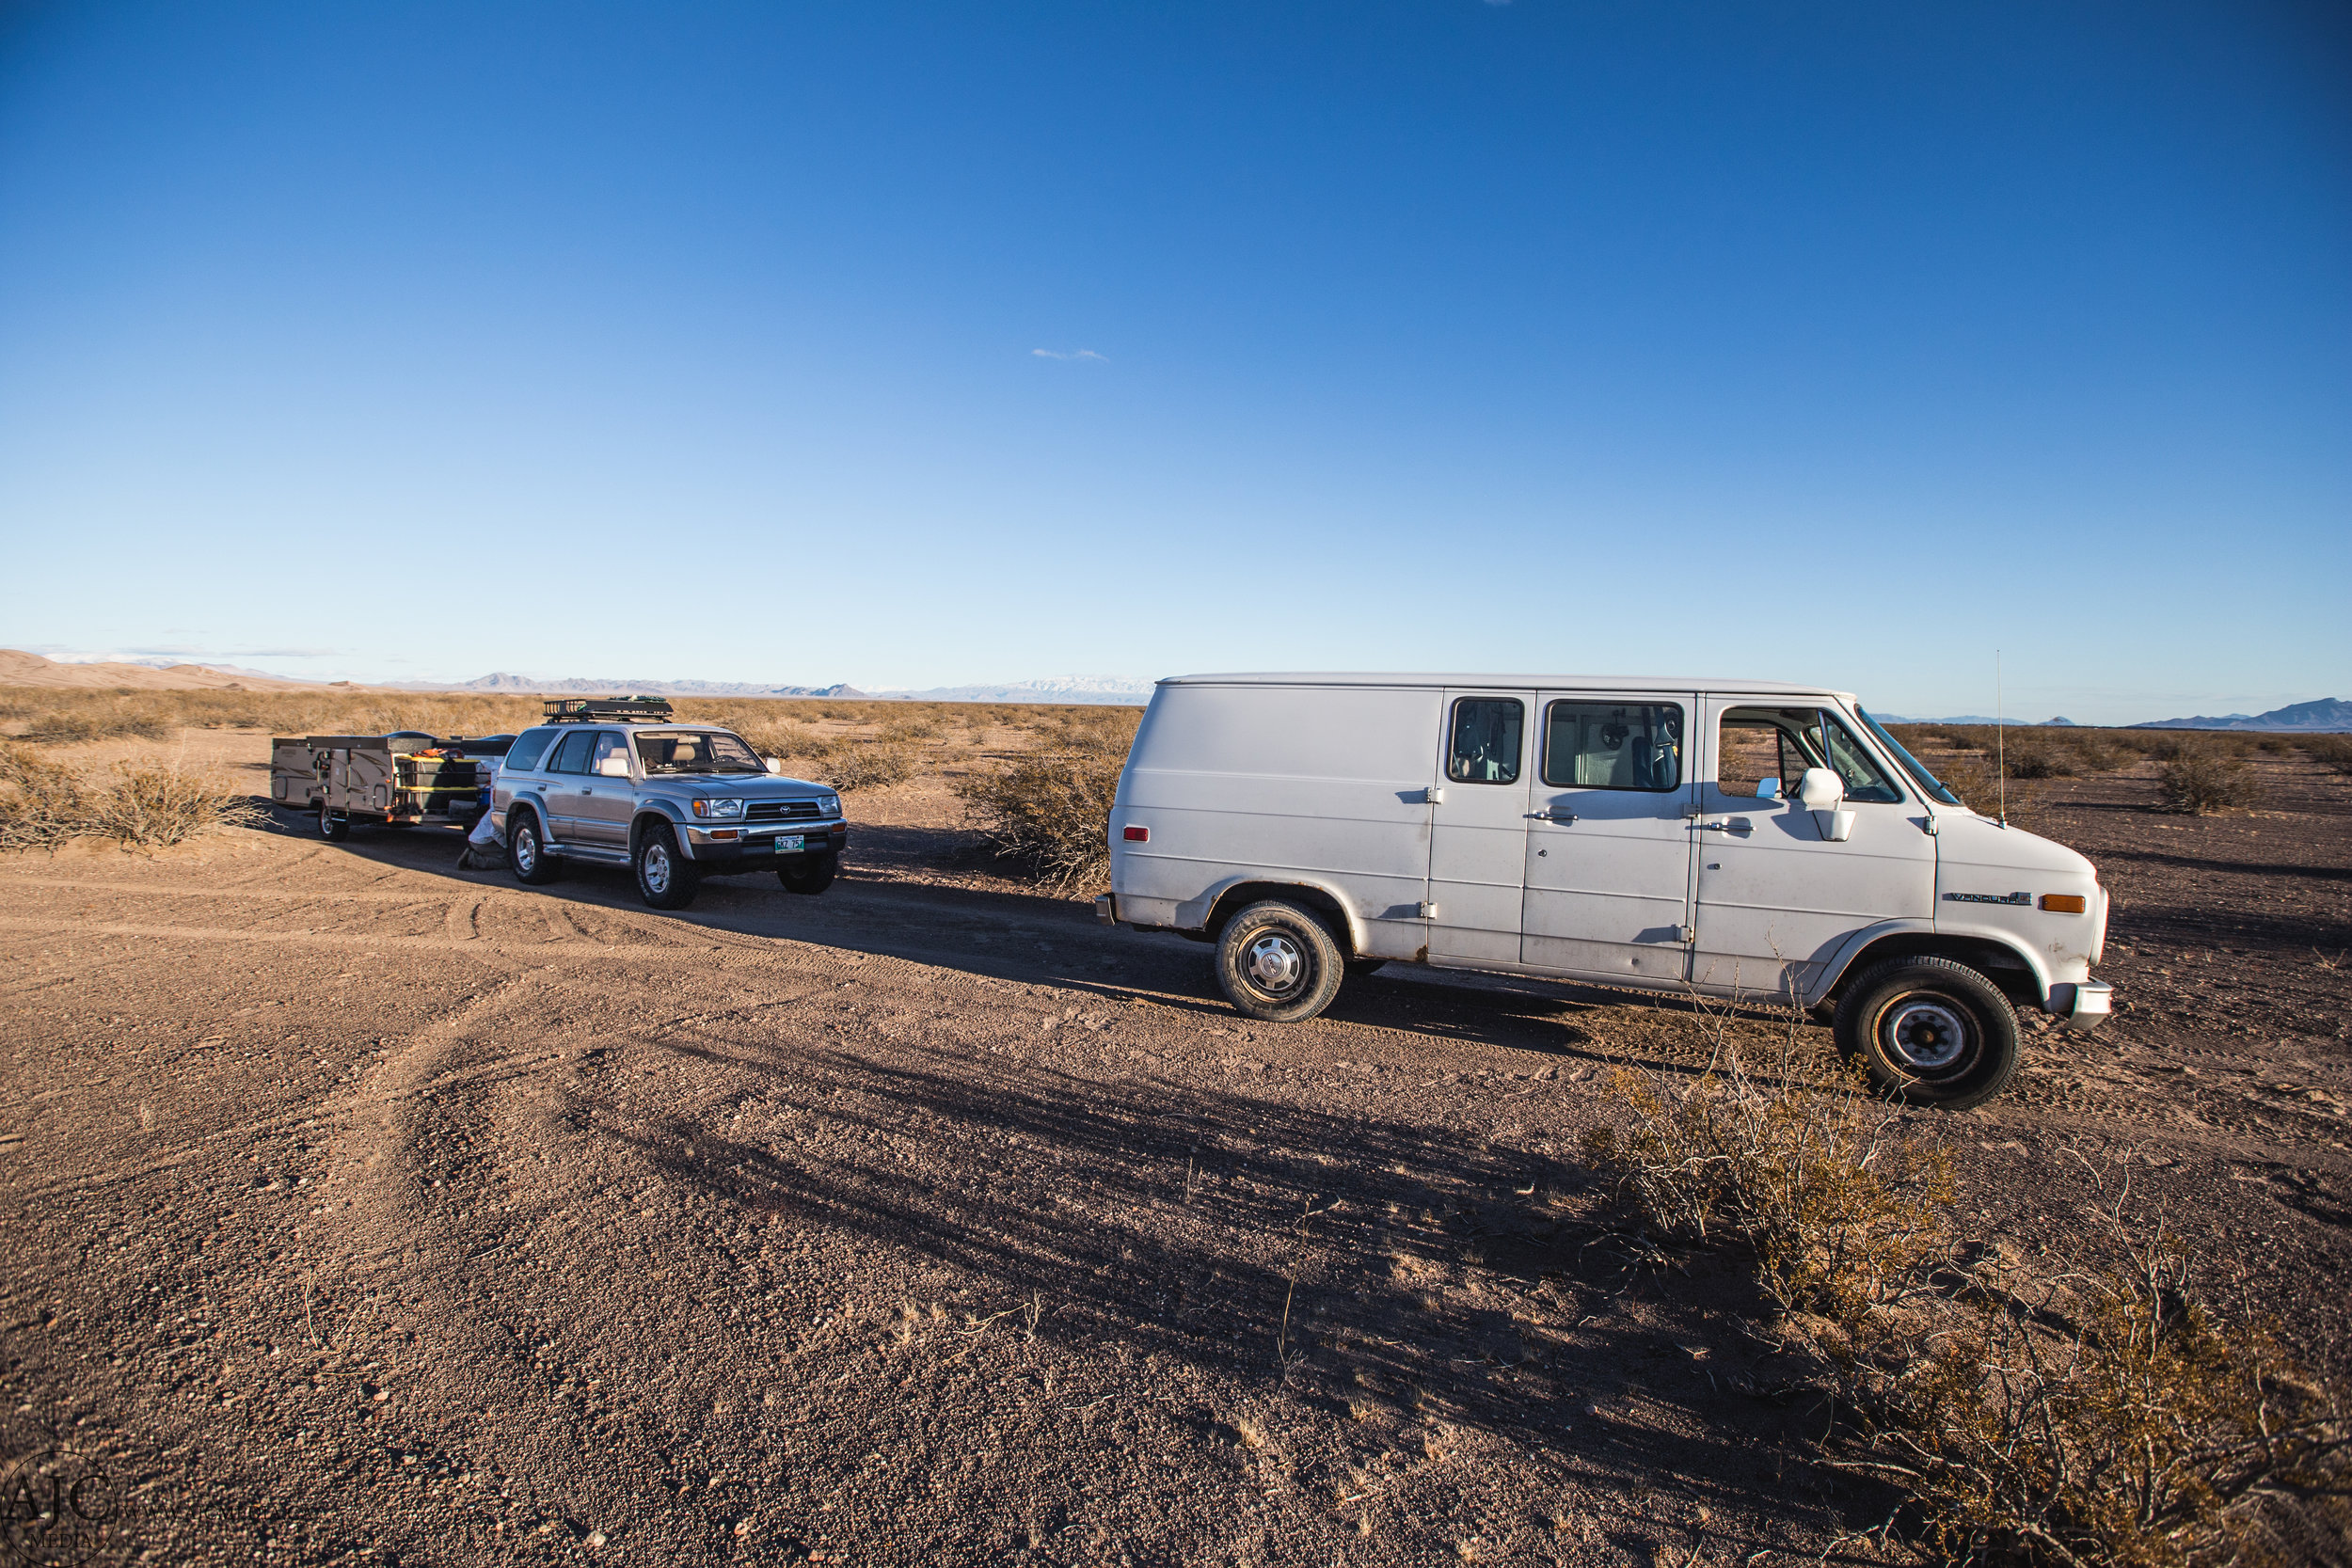 We had to retrieve the trailer separate from the van, then park it behind on solid ground.